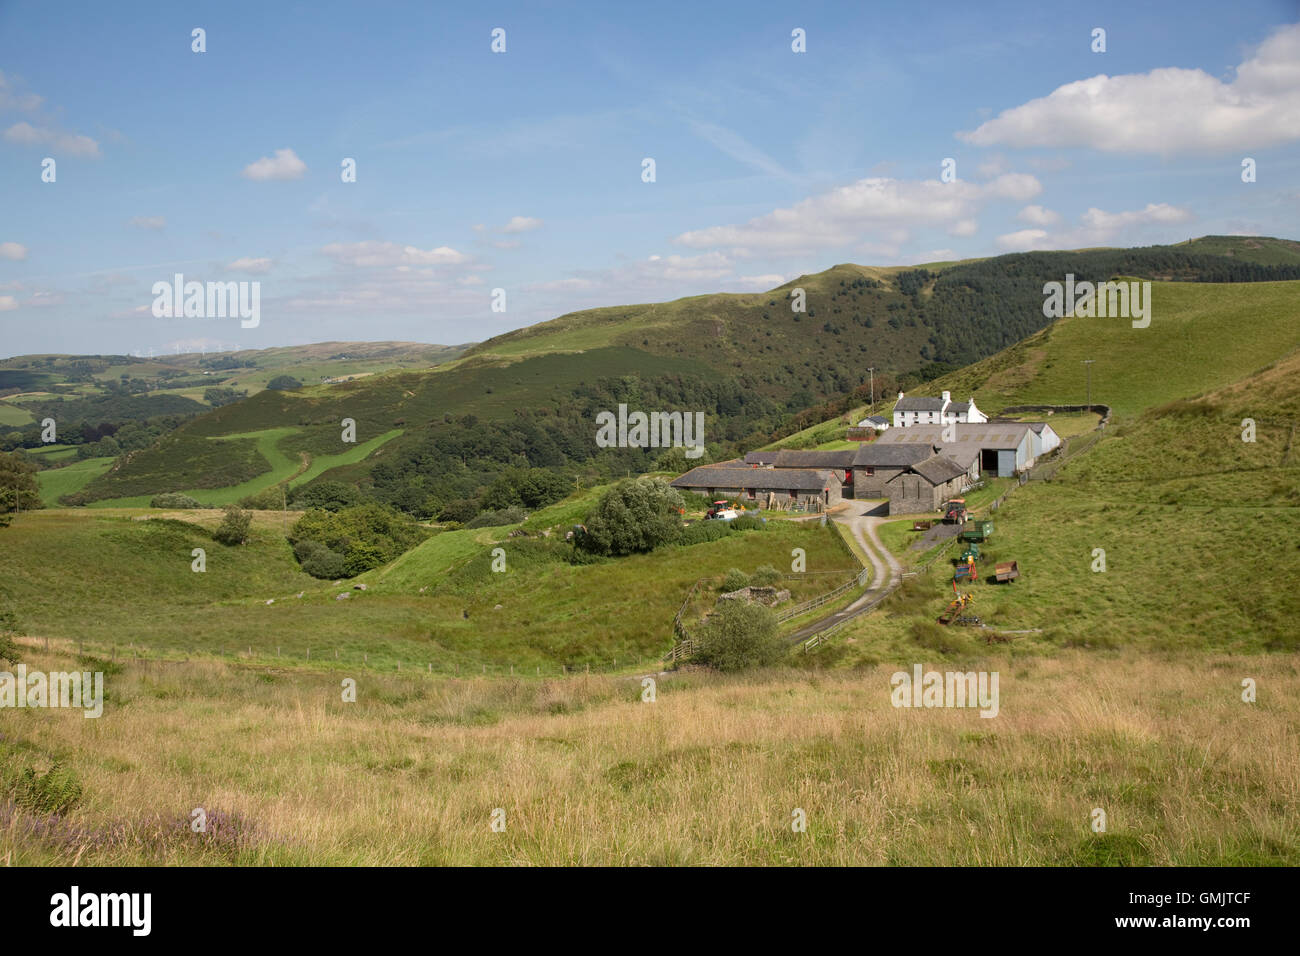 Remote Welsh farm in Cambrian Mountains near Devil's Bridge Ceredigion Wales - Stock Image